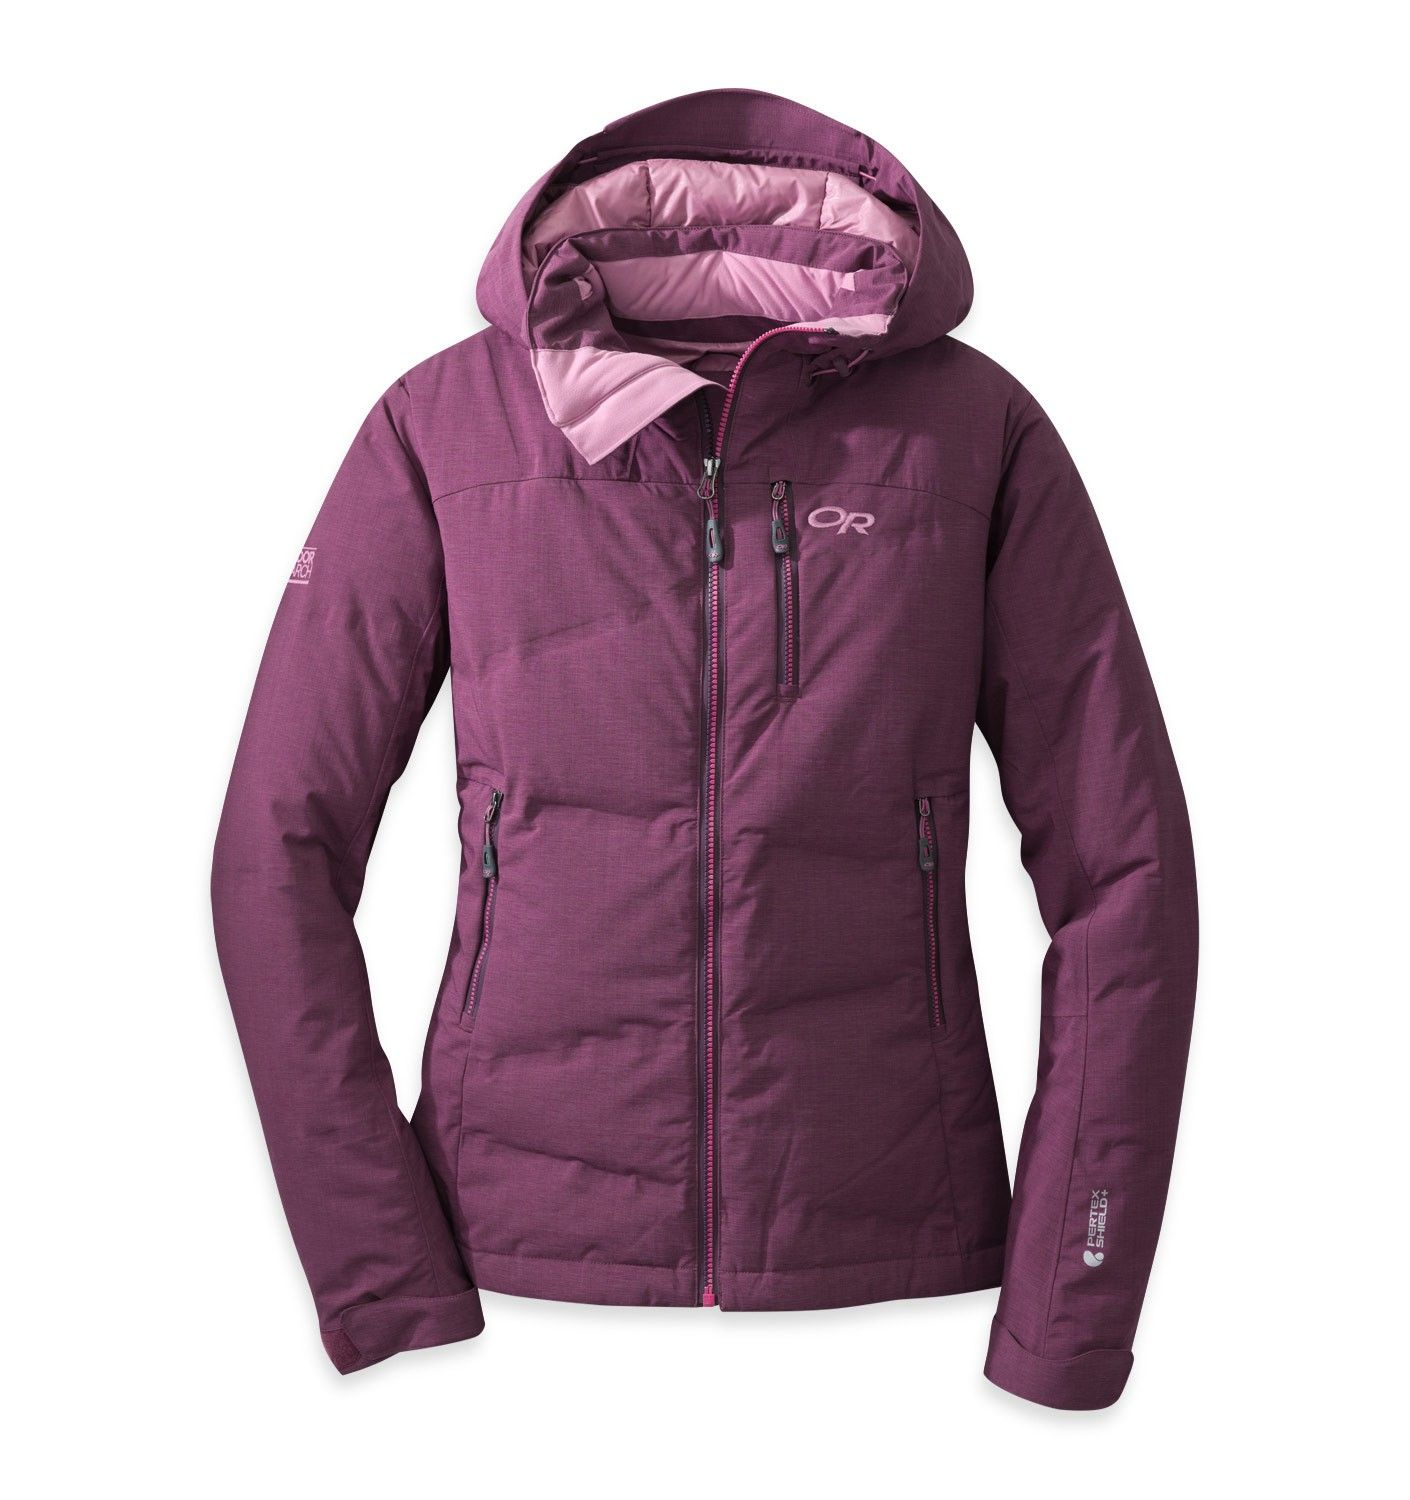 Women's Stormbound Jacket™ - Down & Synthetic - Women's | Outdoor Research | Designed By Adventure | Outdoor Clothing & Gear